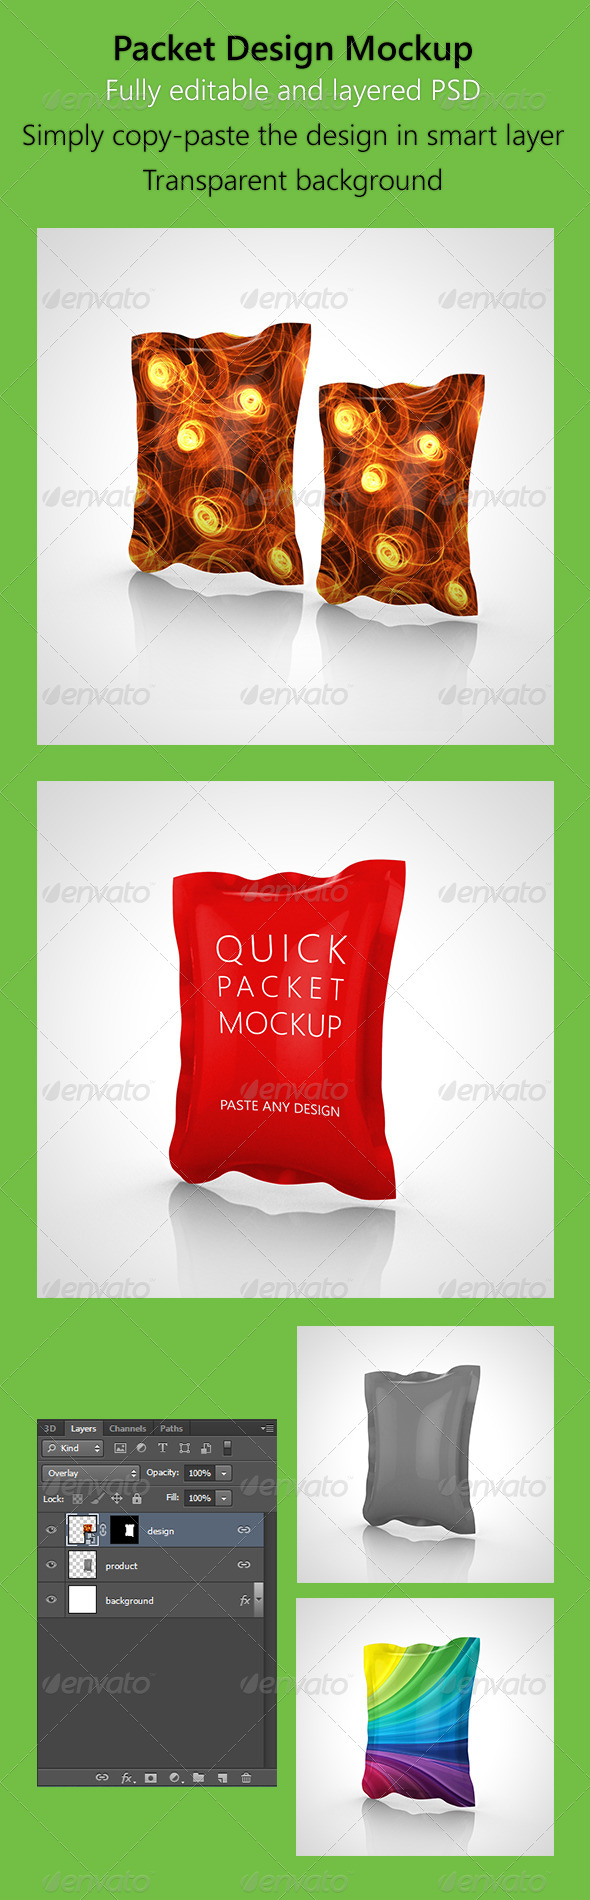 GraphicRiver Packet Design Mockup 5242354